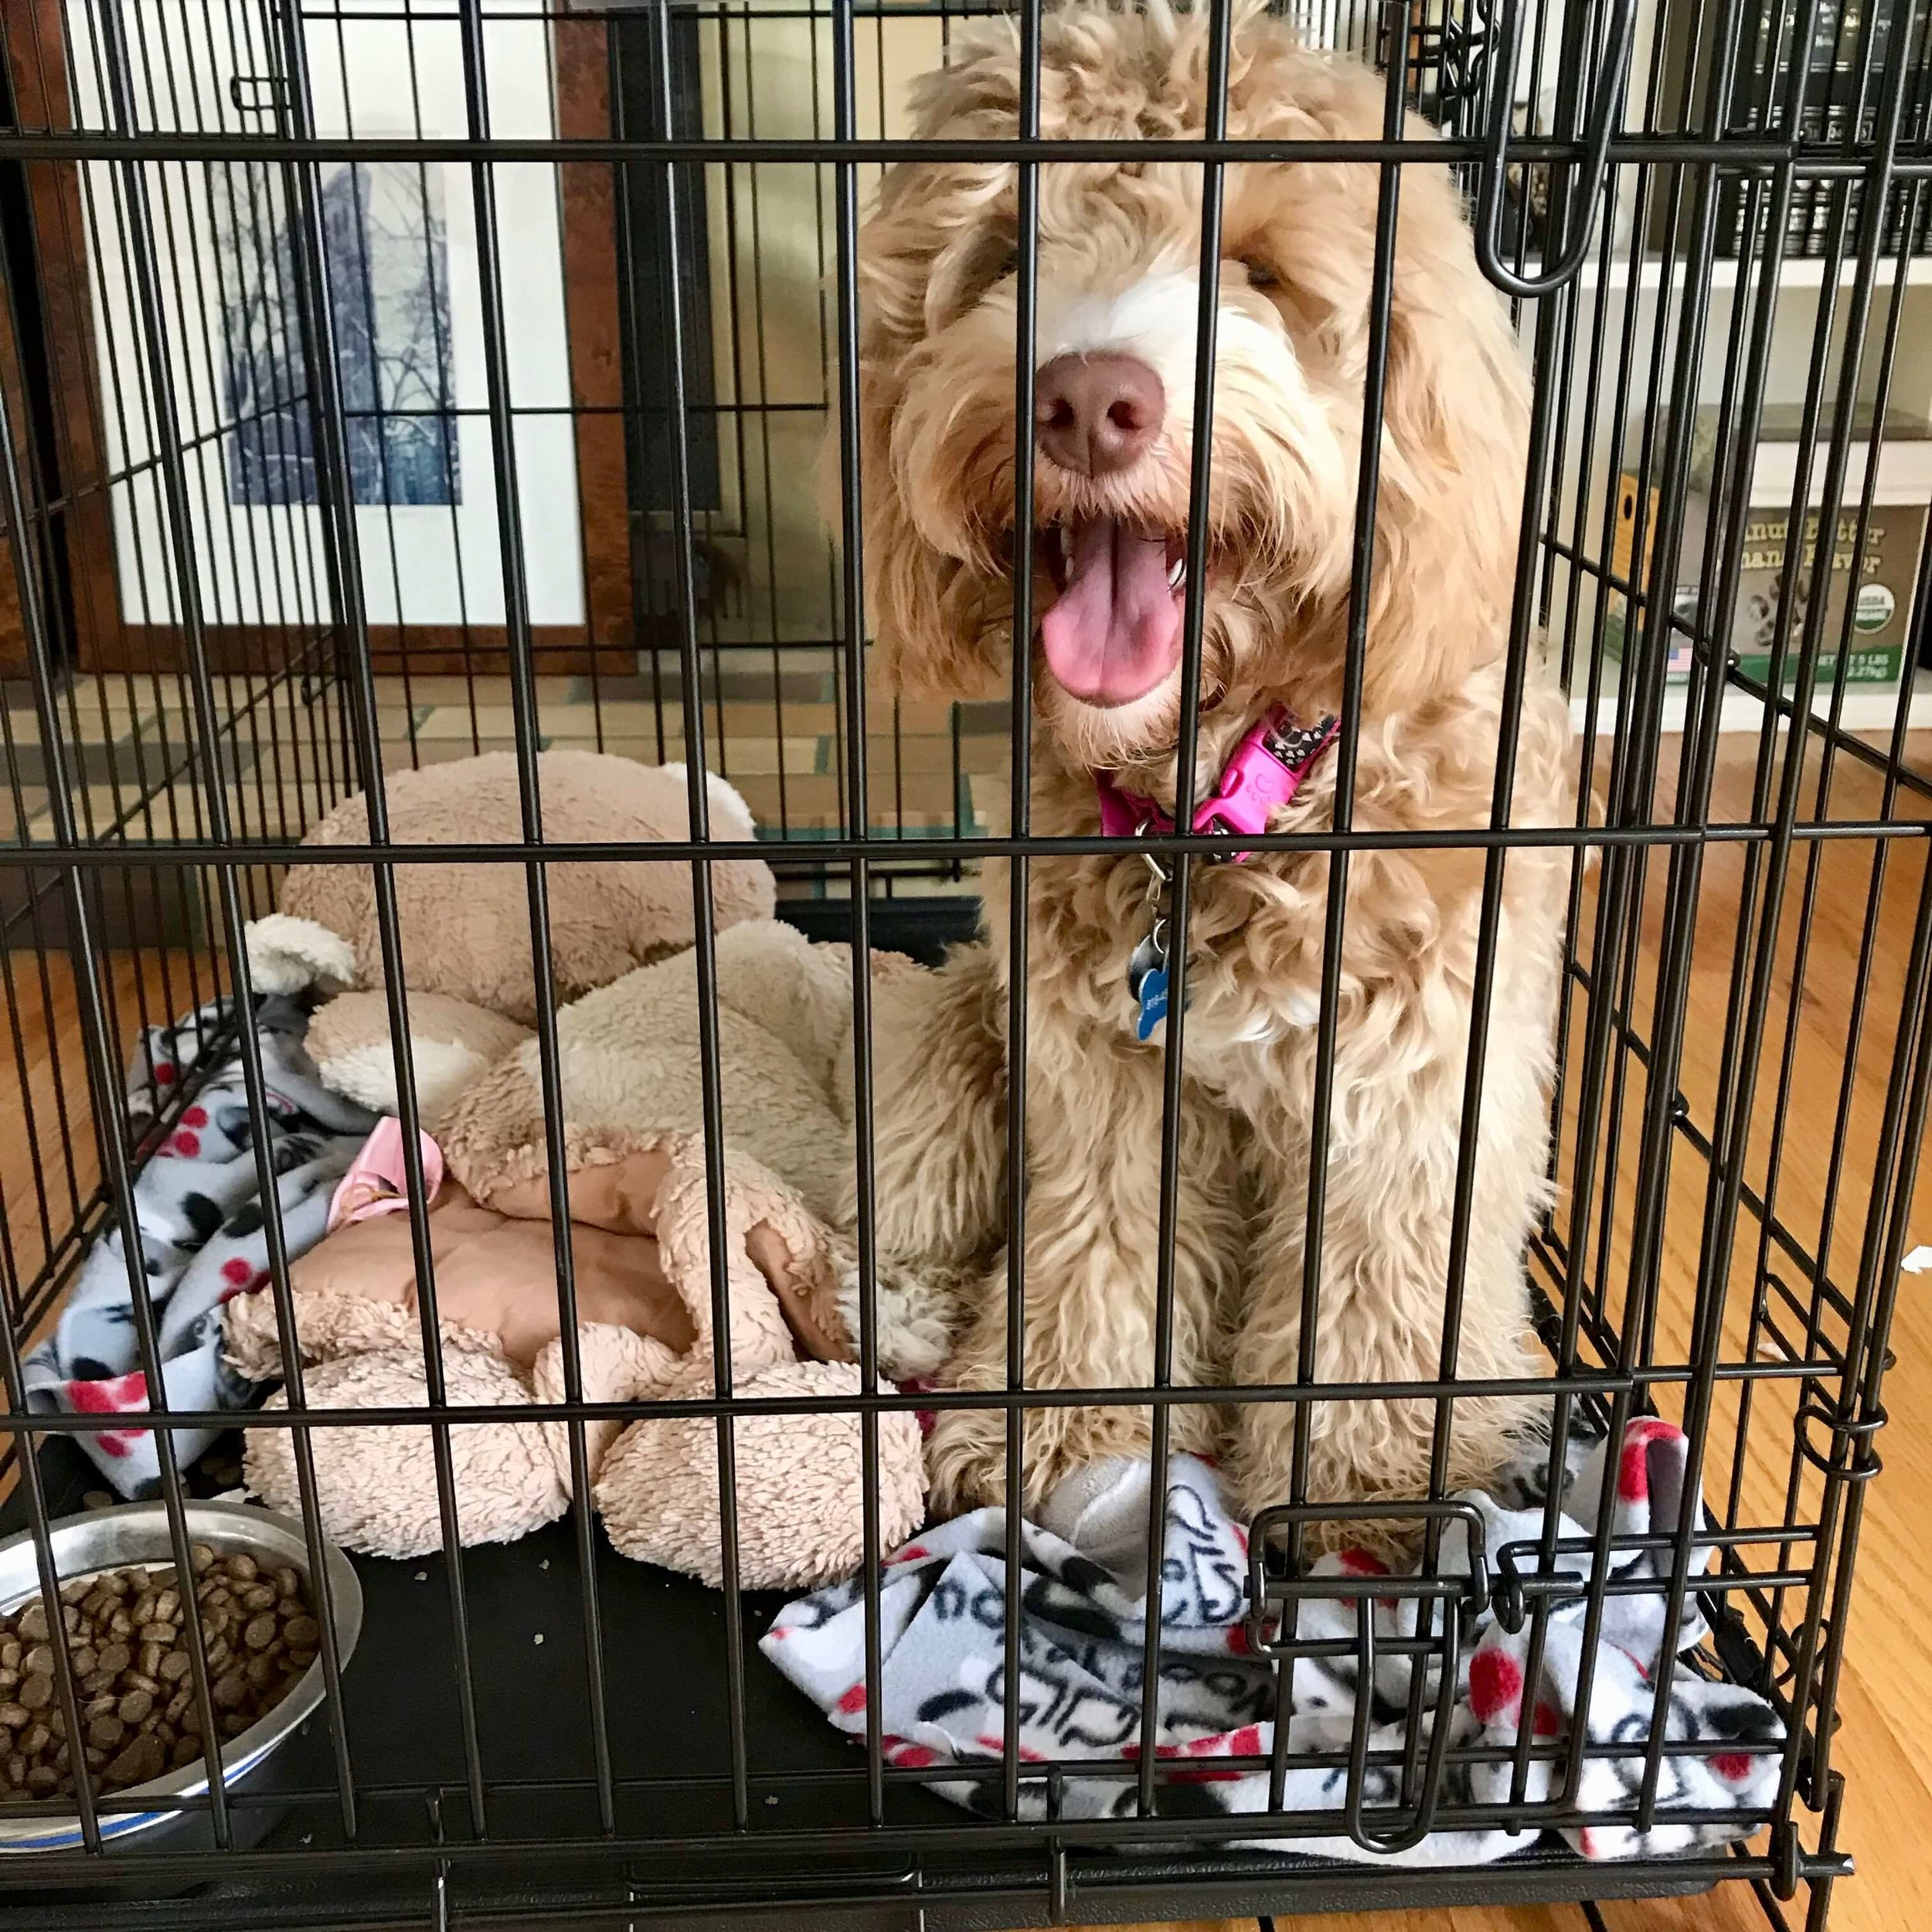 Step 1: To start the calming process, put a dog or puppy in a crate and remain nearby, sitting on the other side of the crate door, but withdrawing all engagement like eye contact, petting, and talking.